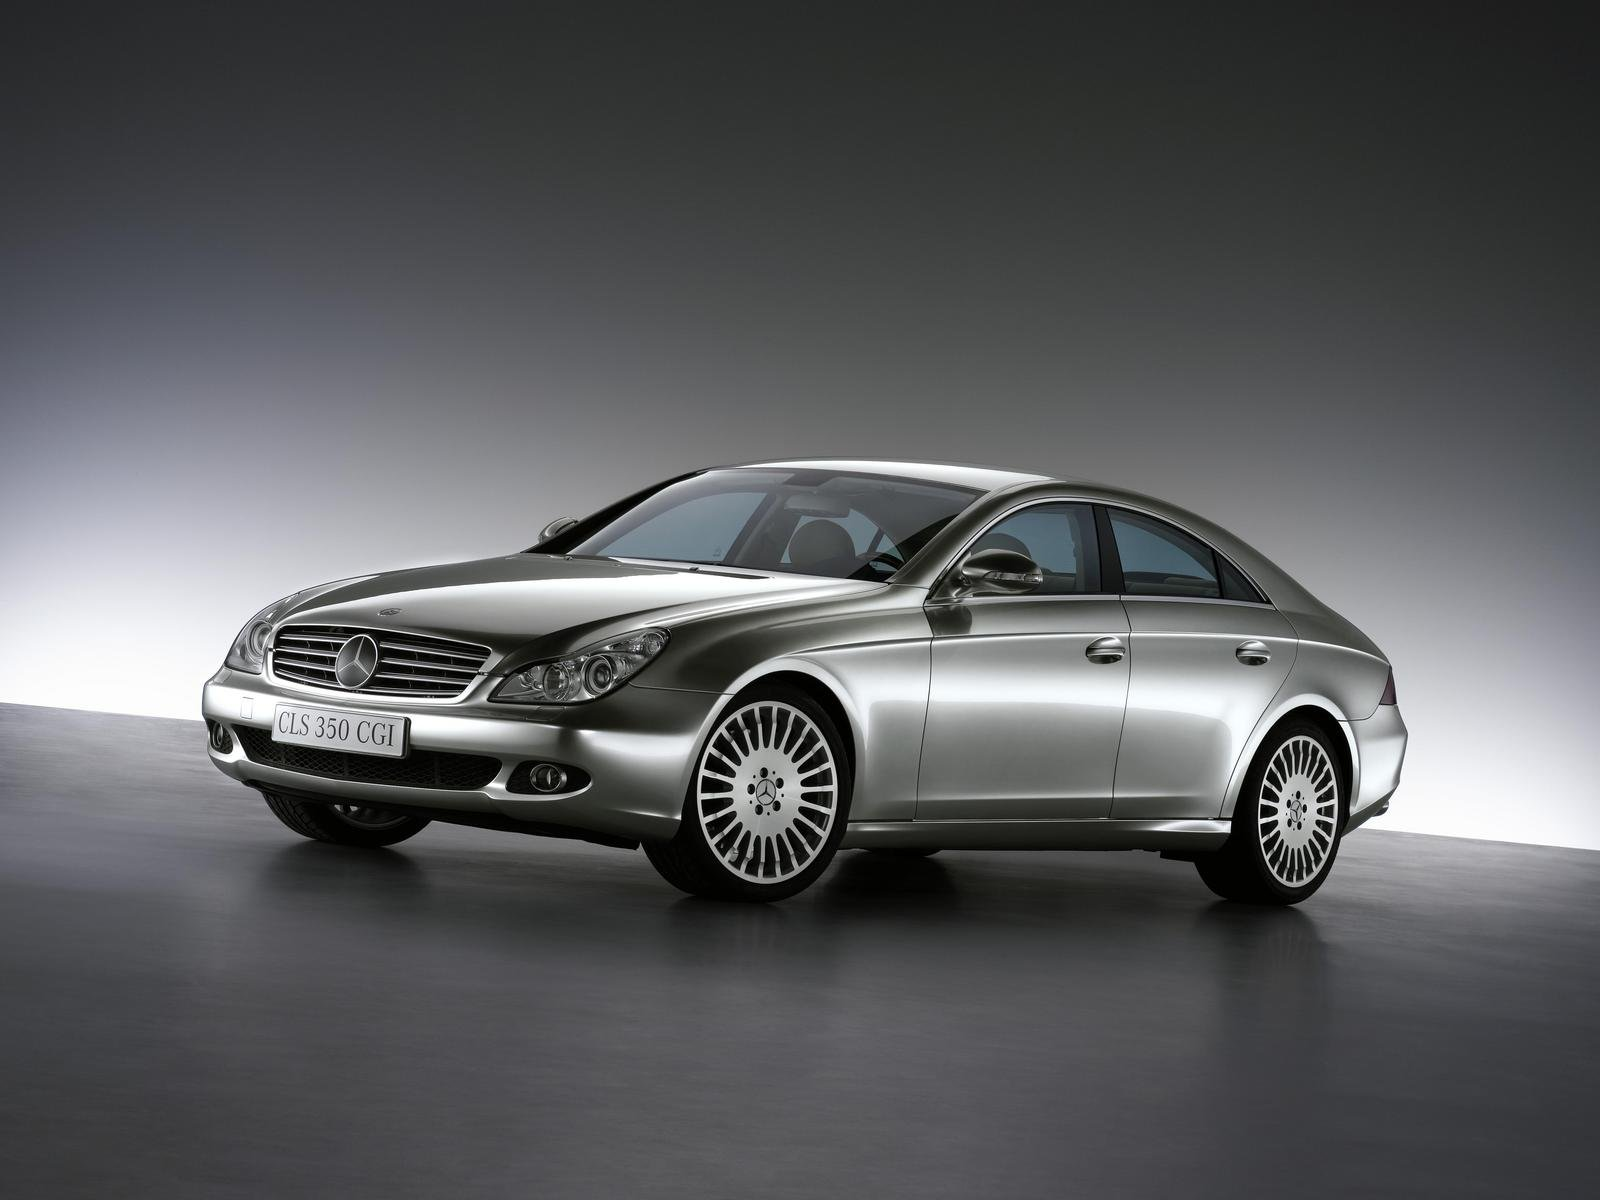 2006 mercedes cls 350 cgi review gallery top speed for Mercedes benz gas chambers